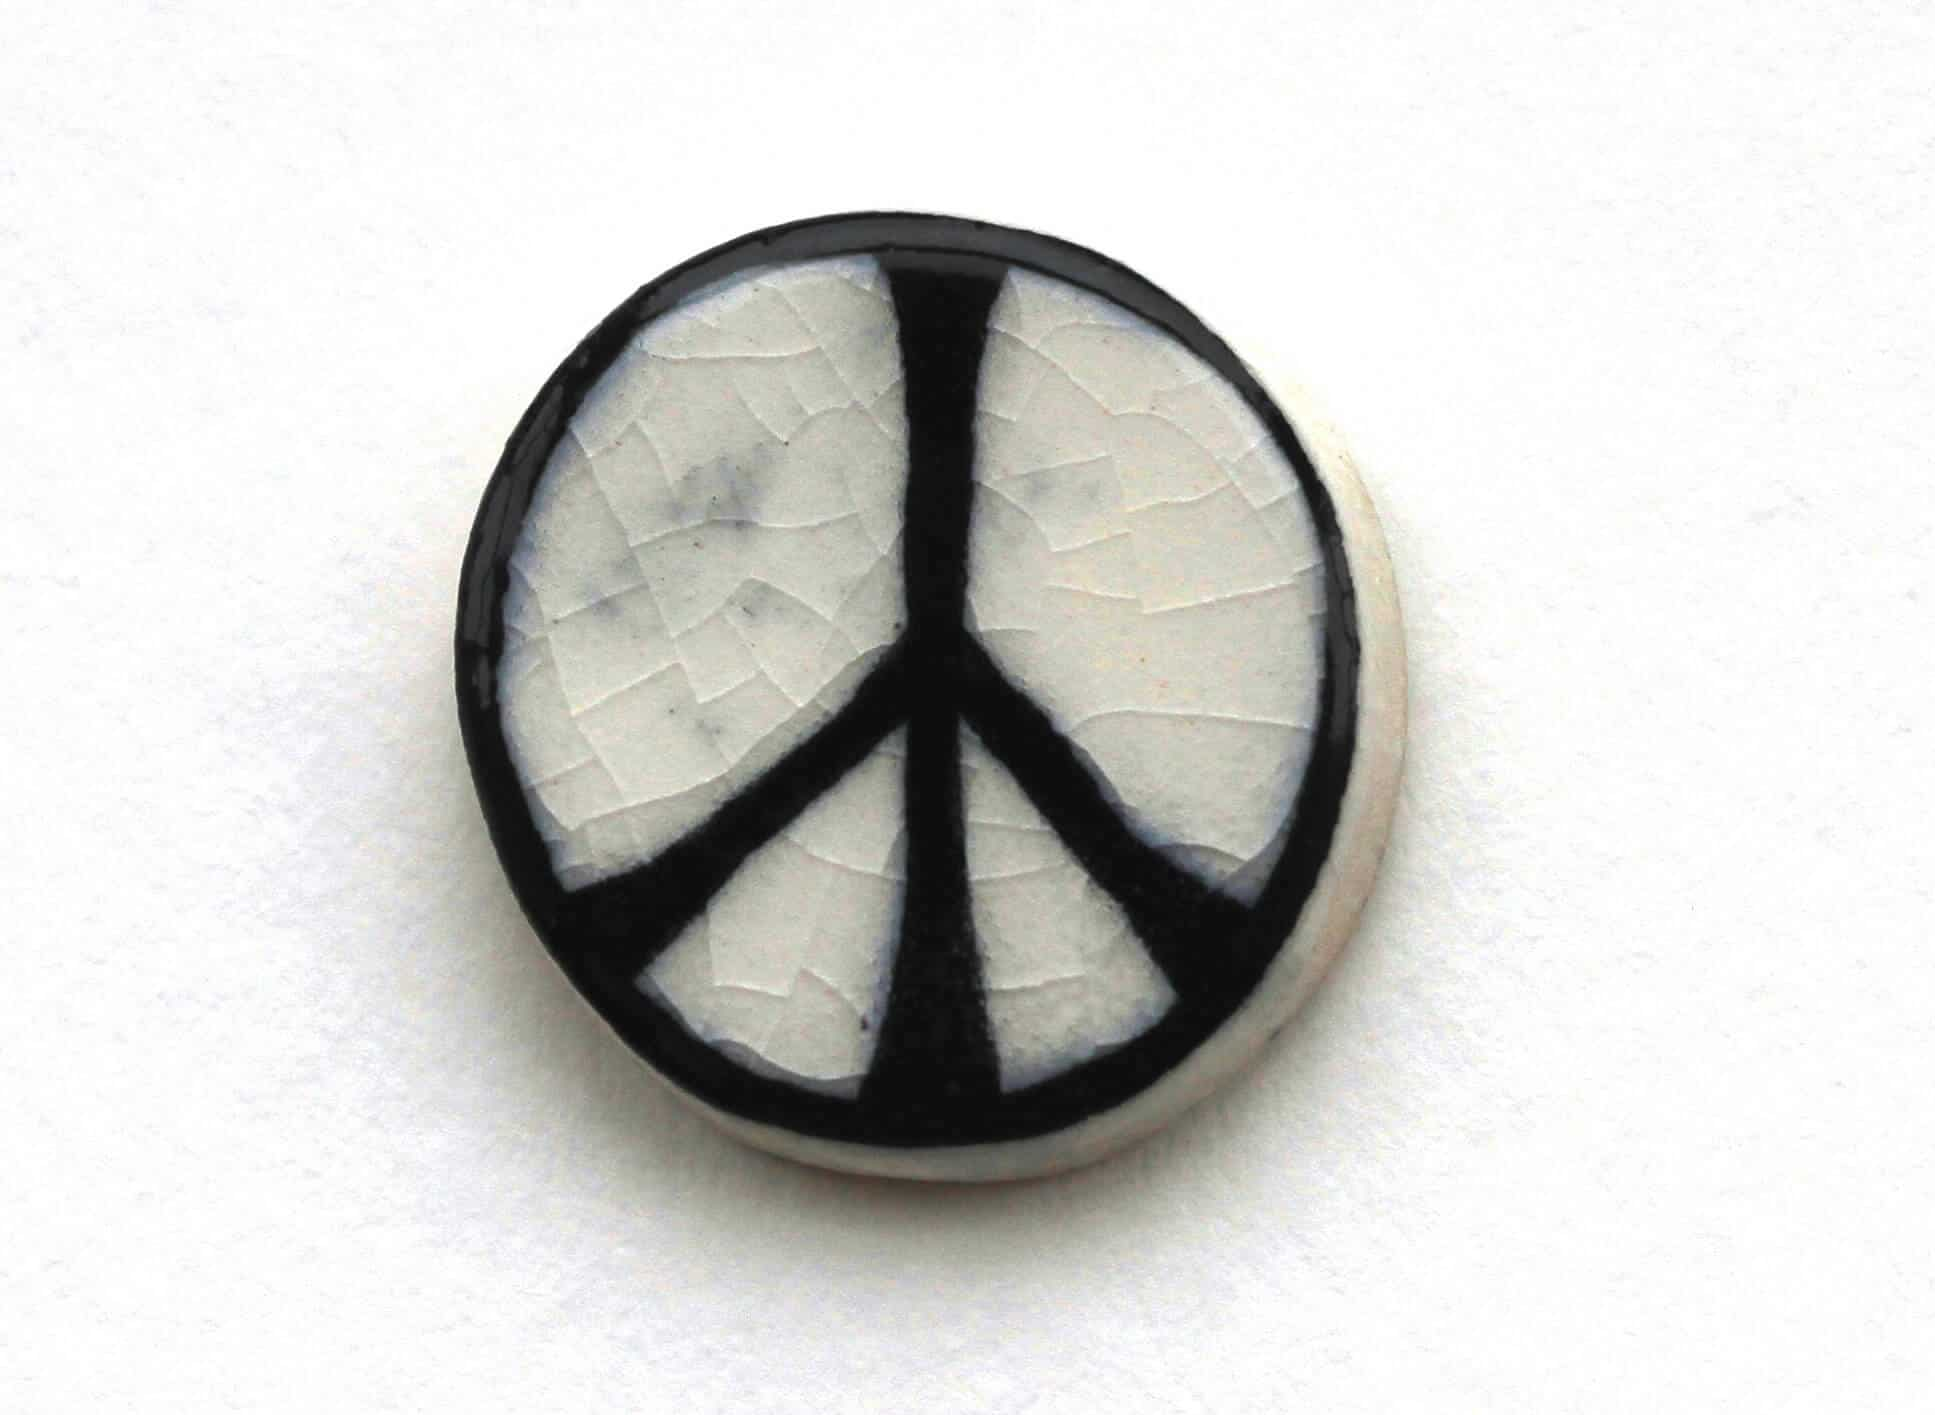 History Of The Symbol Campaign For Nuclear Disarmament